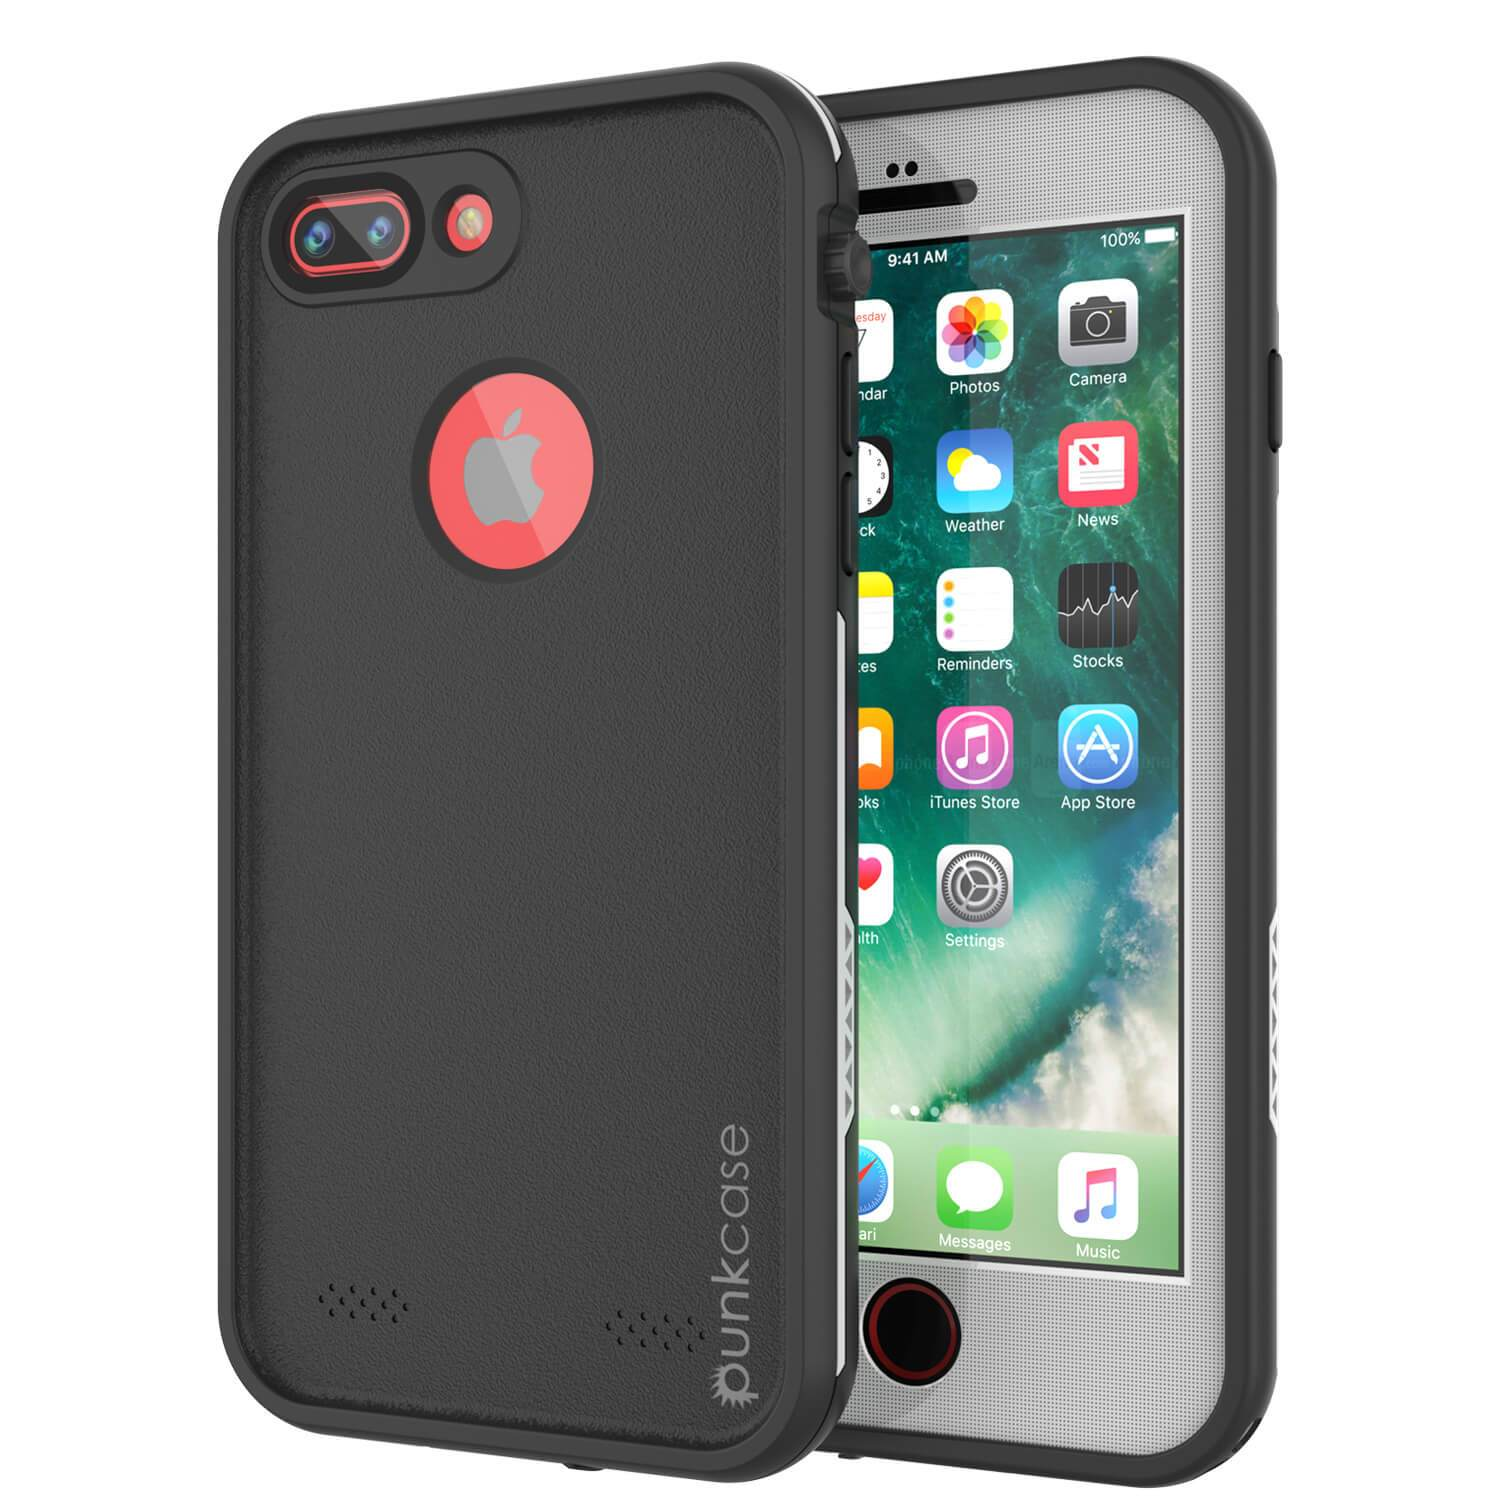 iPhone 7+ Plus Waterproof Case, Punkcase SpikeStar White Series | Thin Fit 6.6ft Underwater IP68